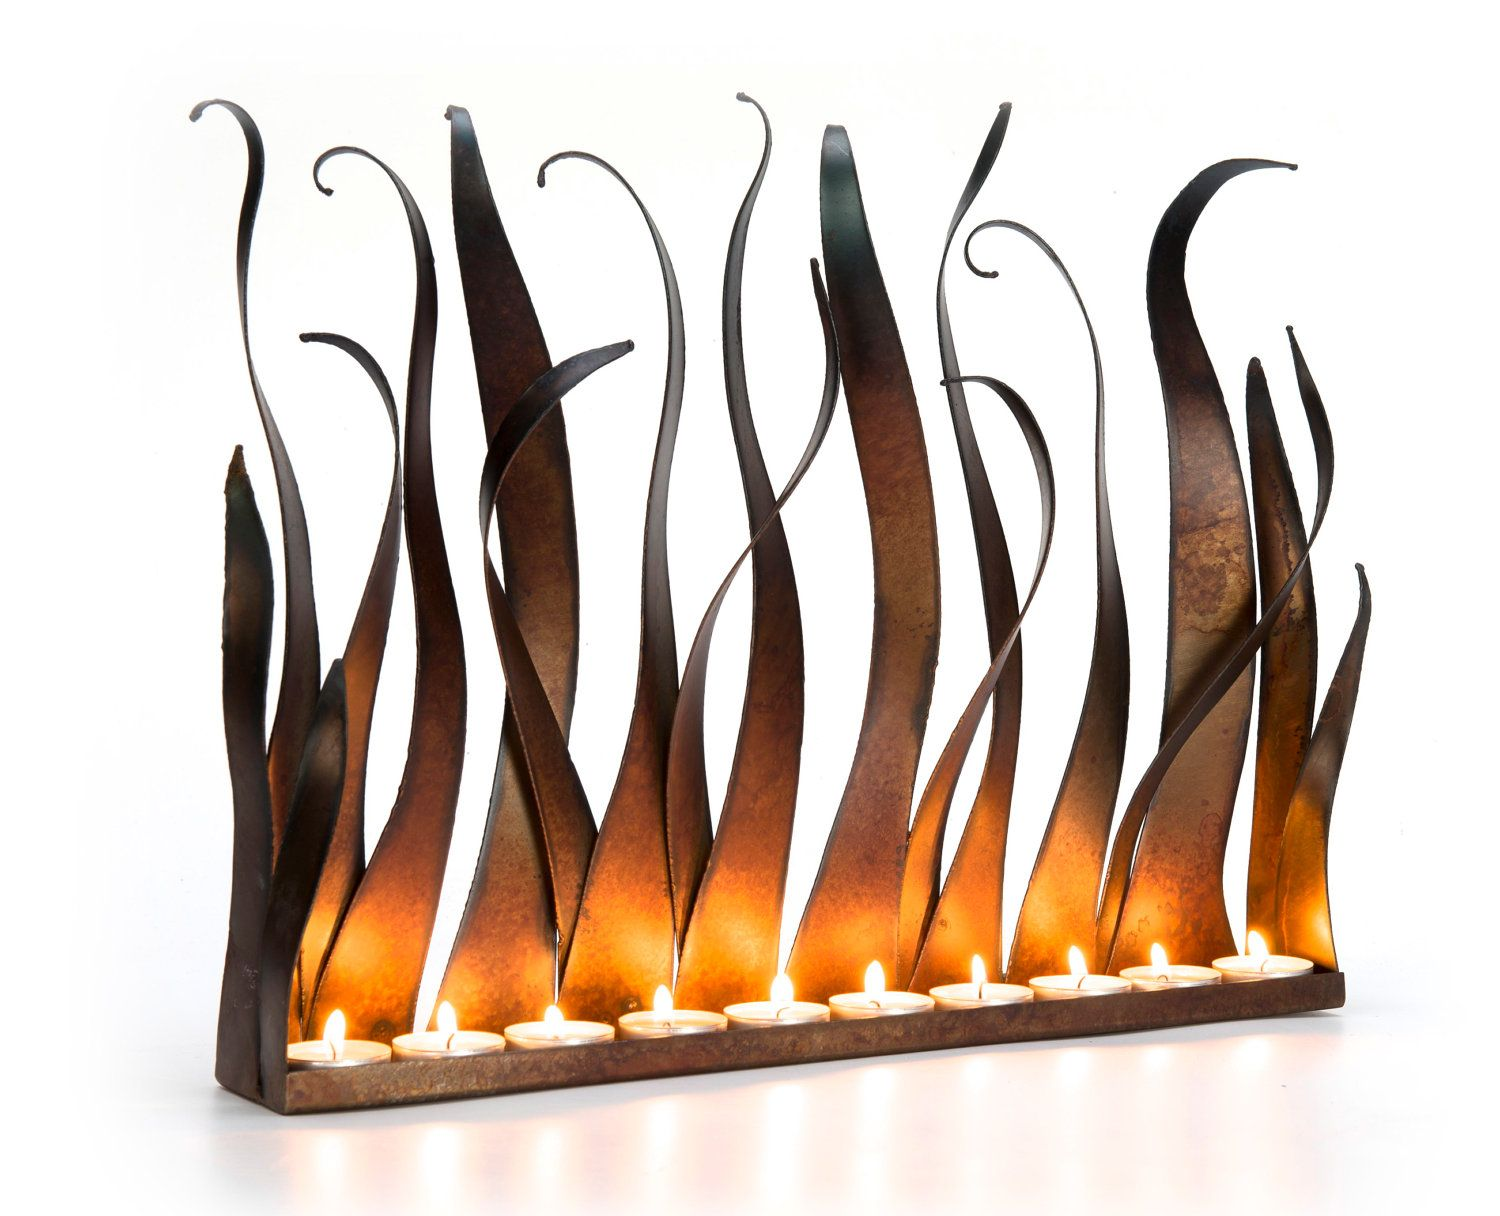 metal candle holder tabletop sculpture by aurawaterfalls